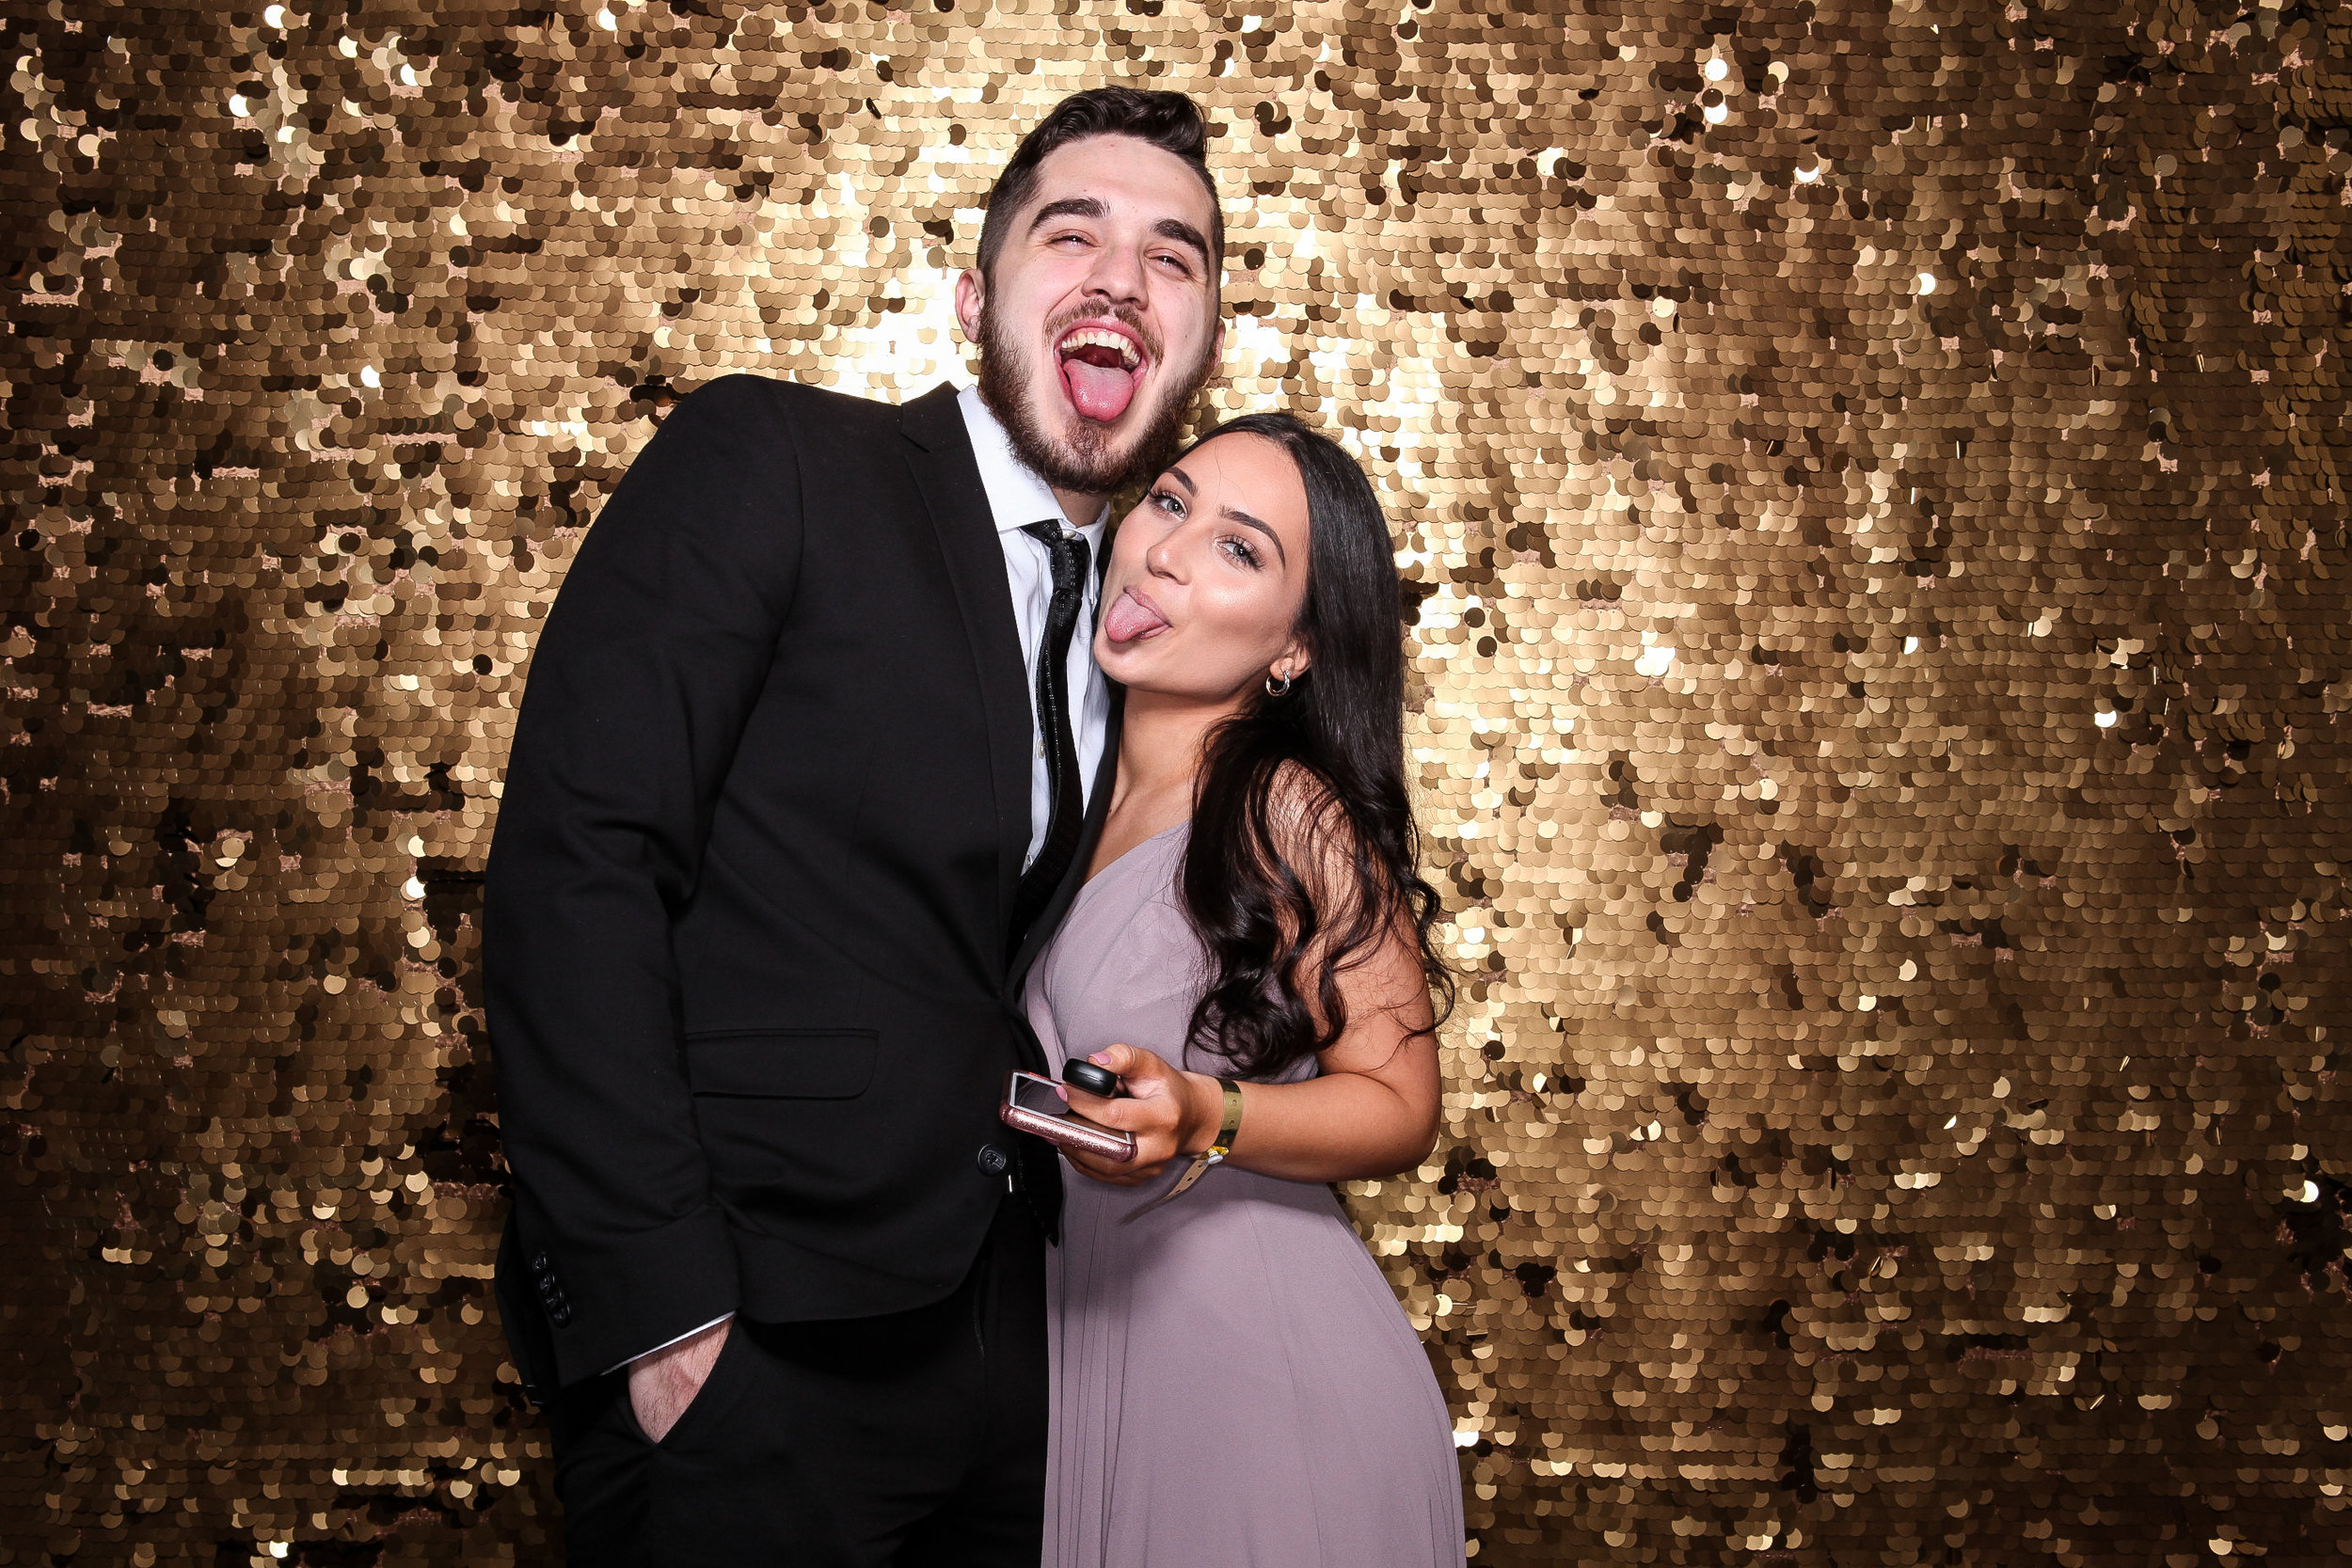 20190503_Adelphi_Senior_Formal-091.jpg